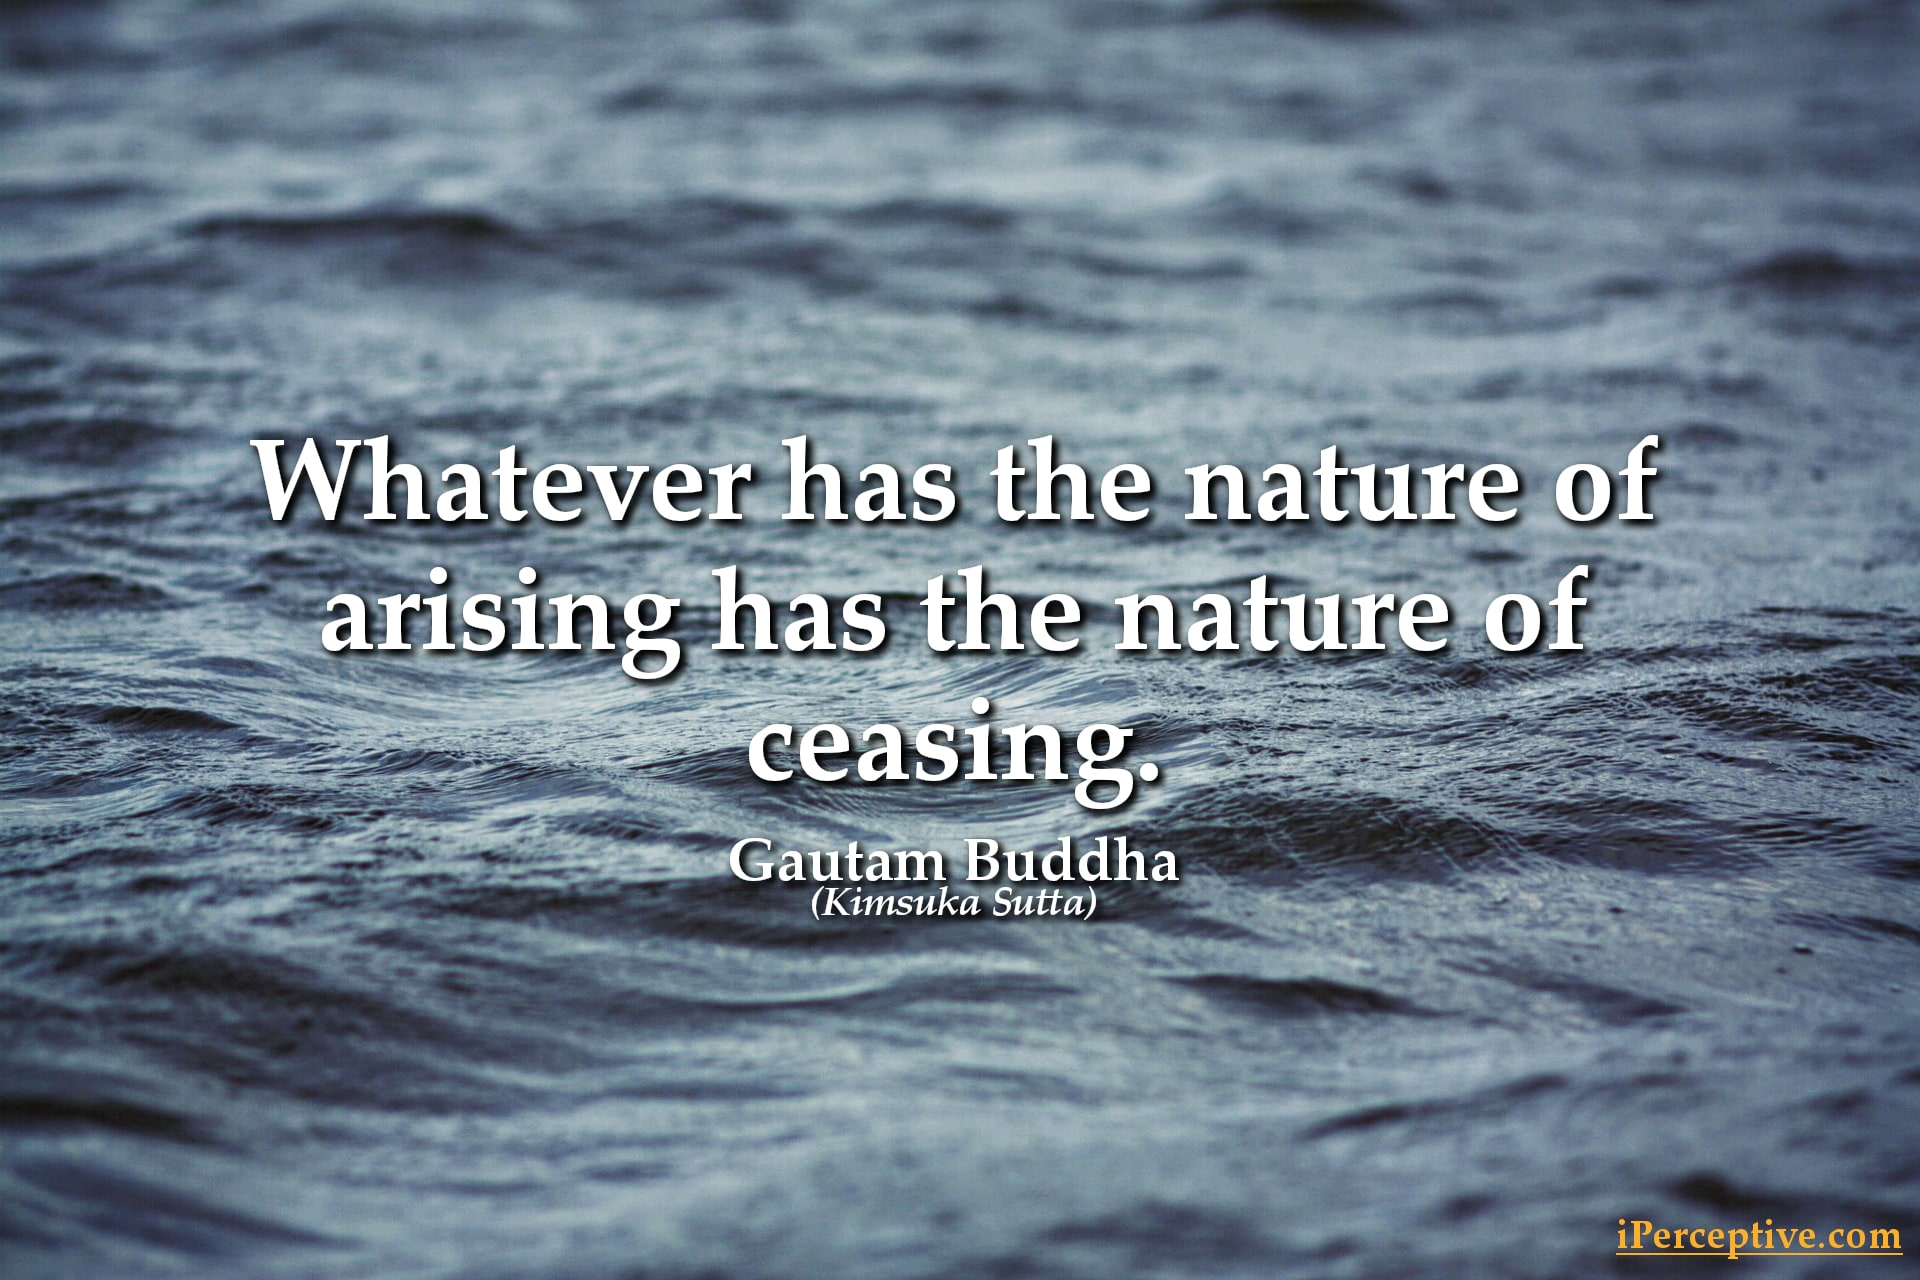 Gautam Buddha Quote: Whatever has the nature of arising has...